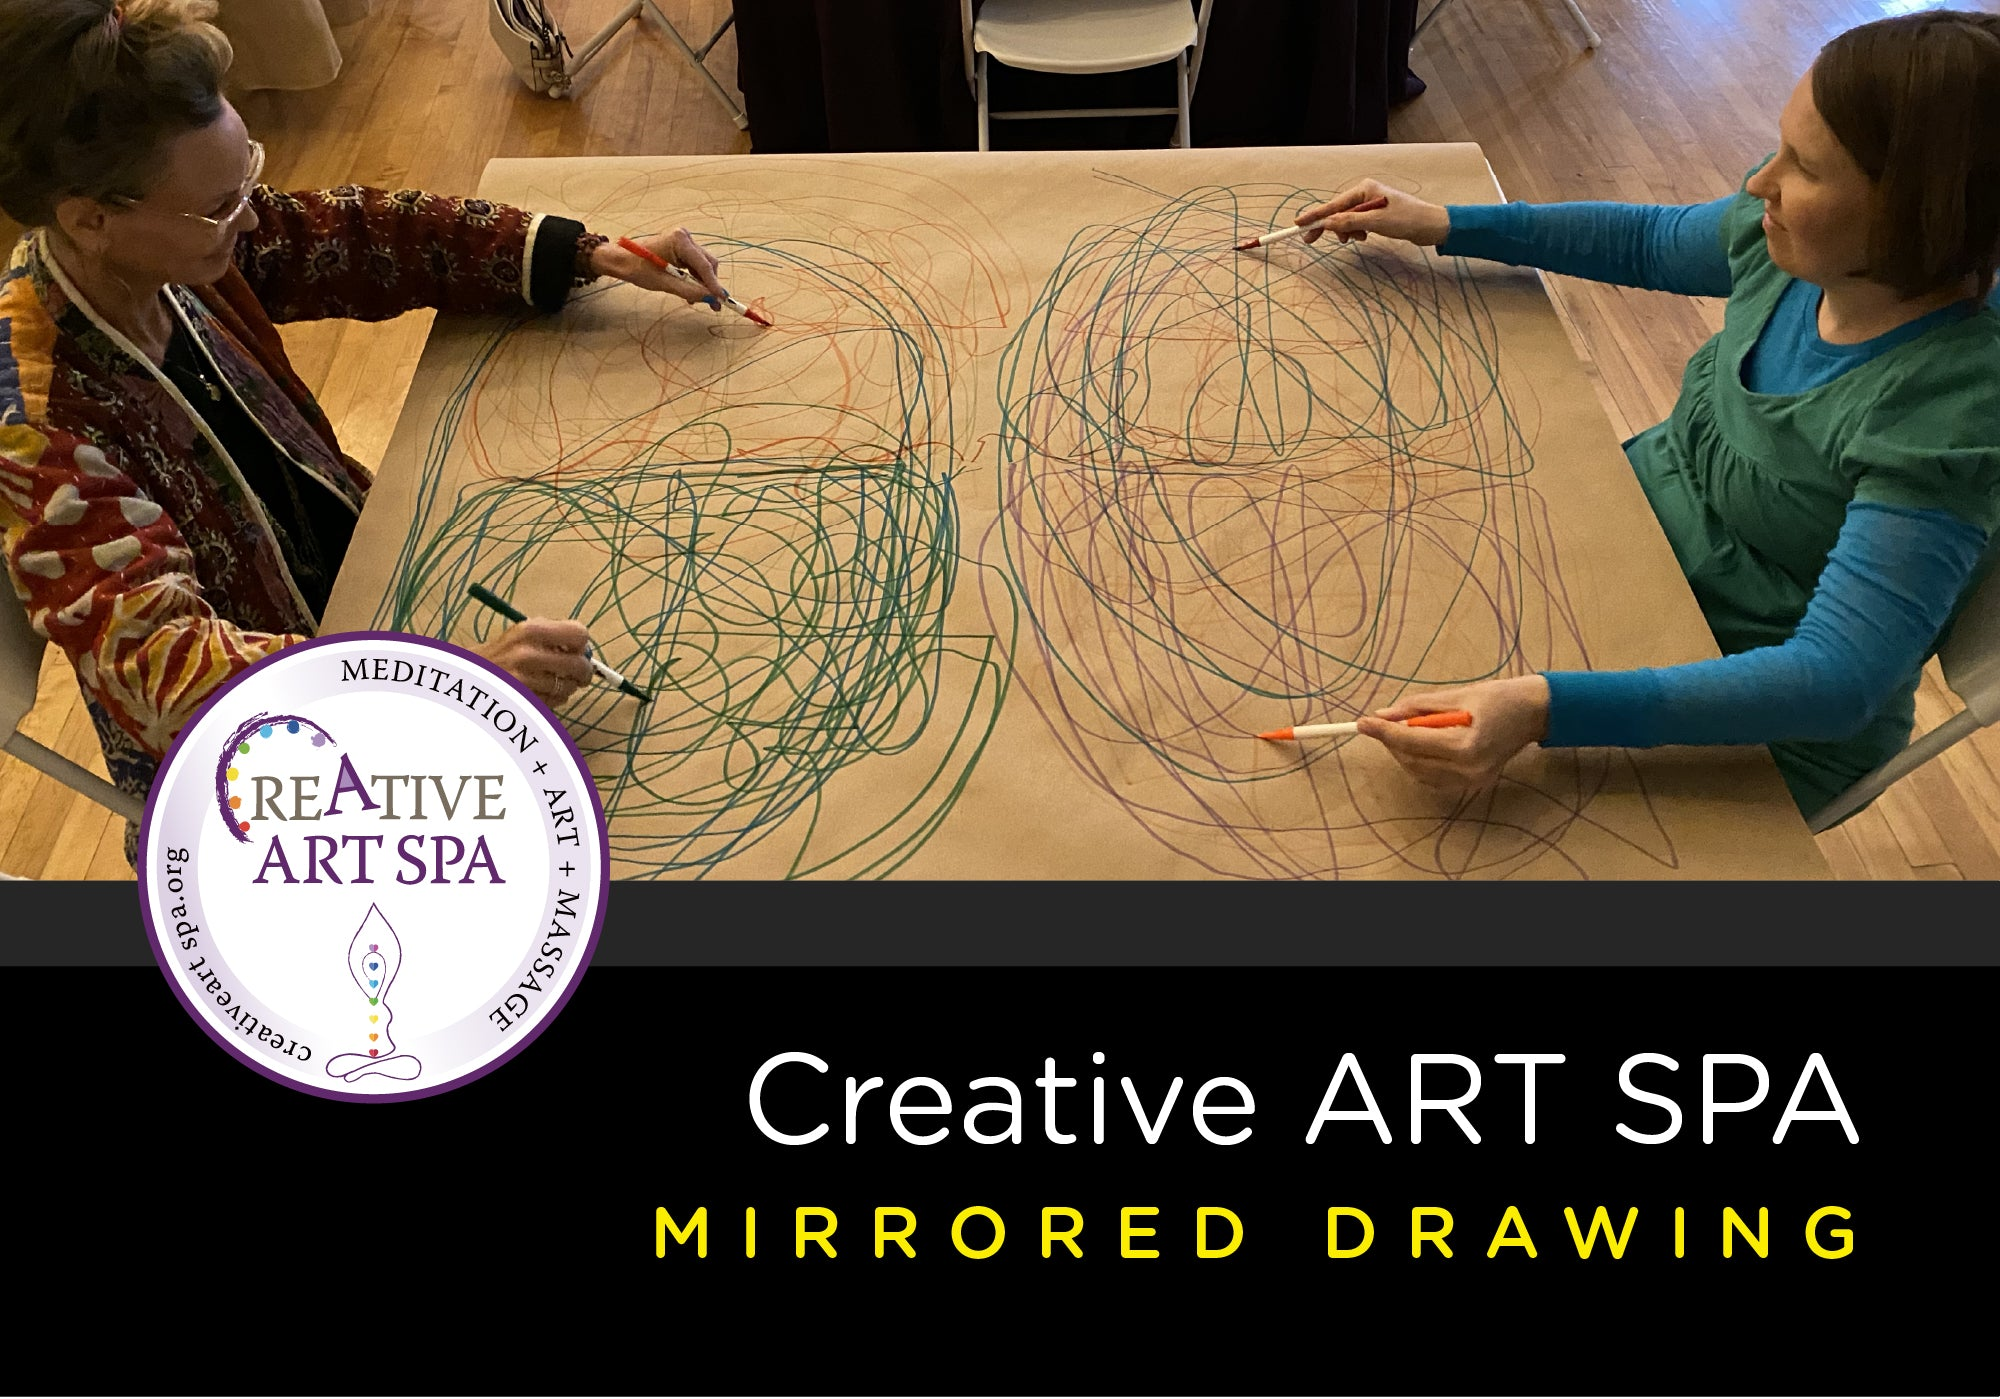 ART SPA: Mirrored Drawing October 14th 6-8 PM